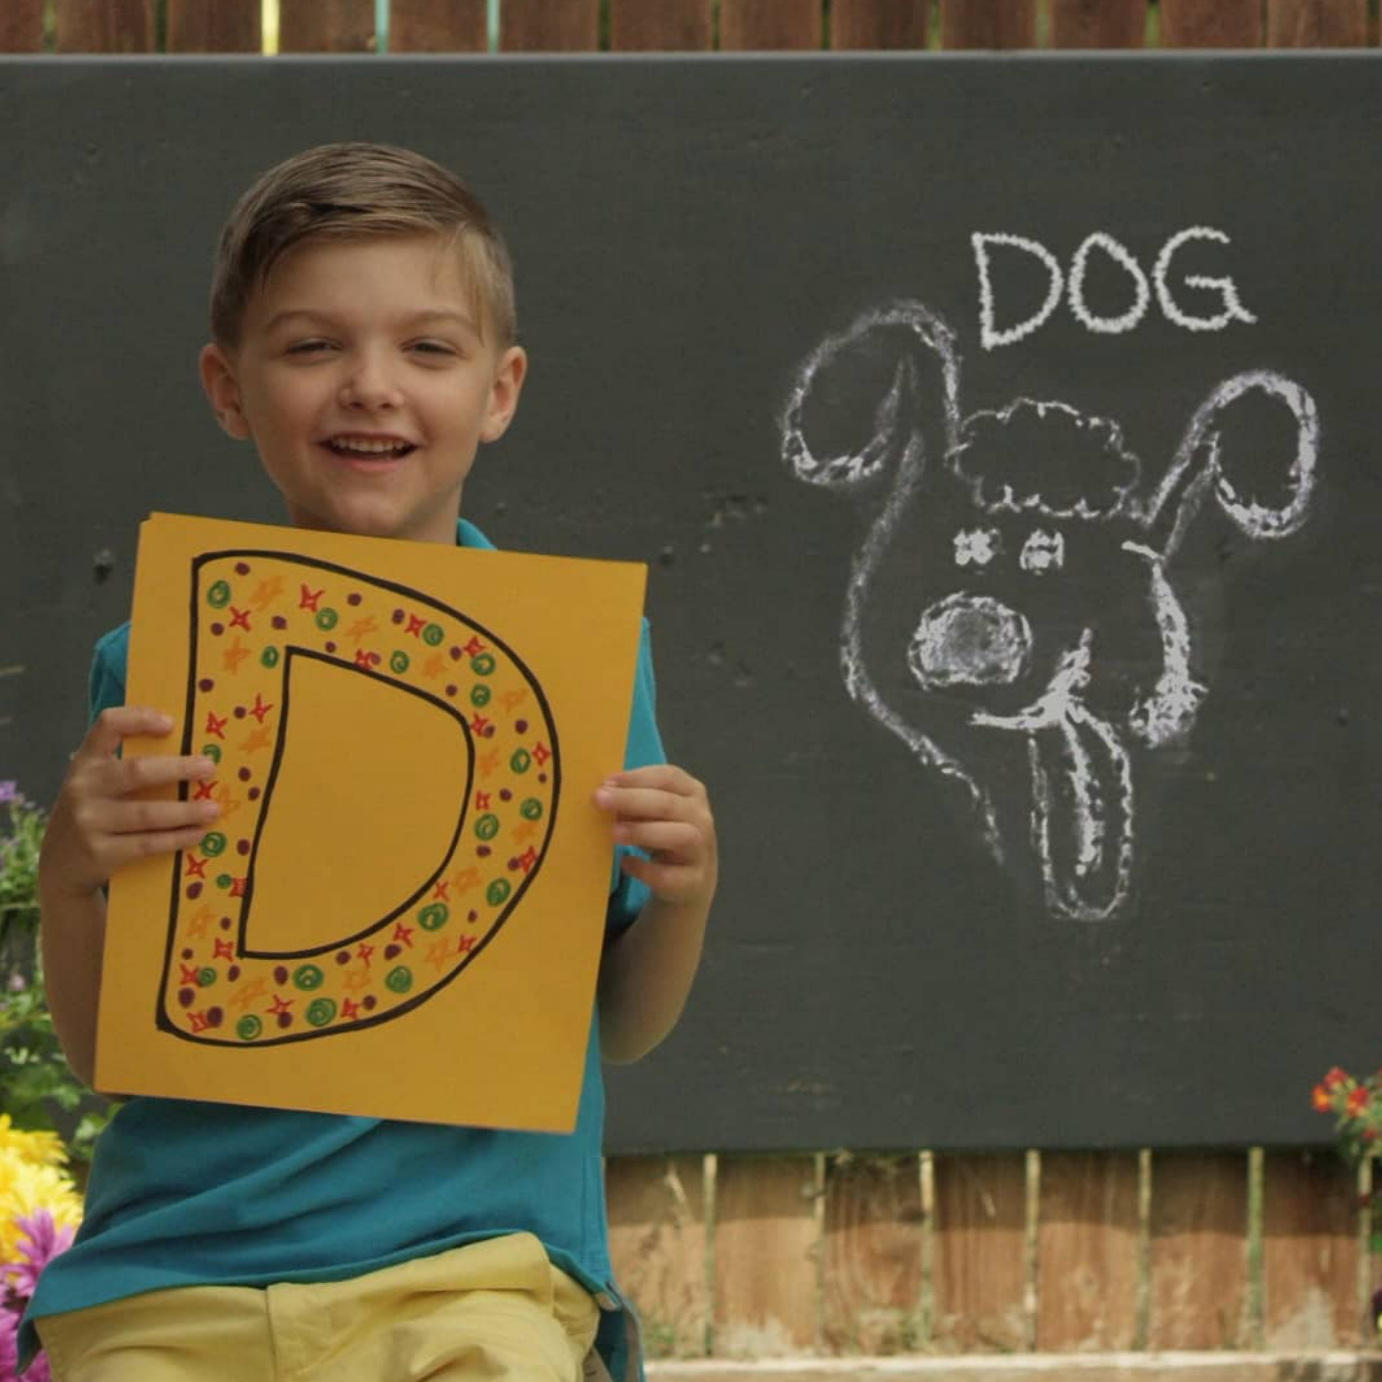 D is for Dog - Writer/director Paige Morrow Kimball  makazanfilms.com